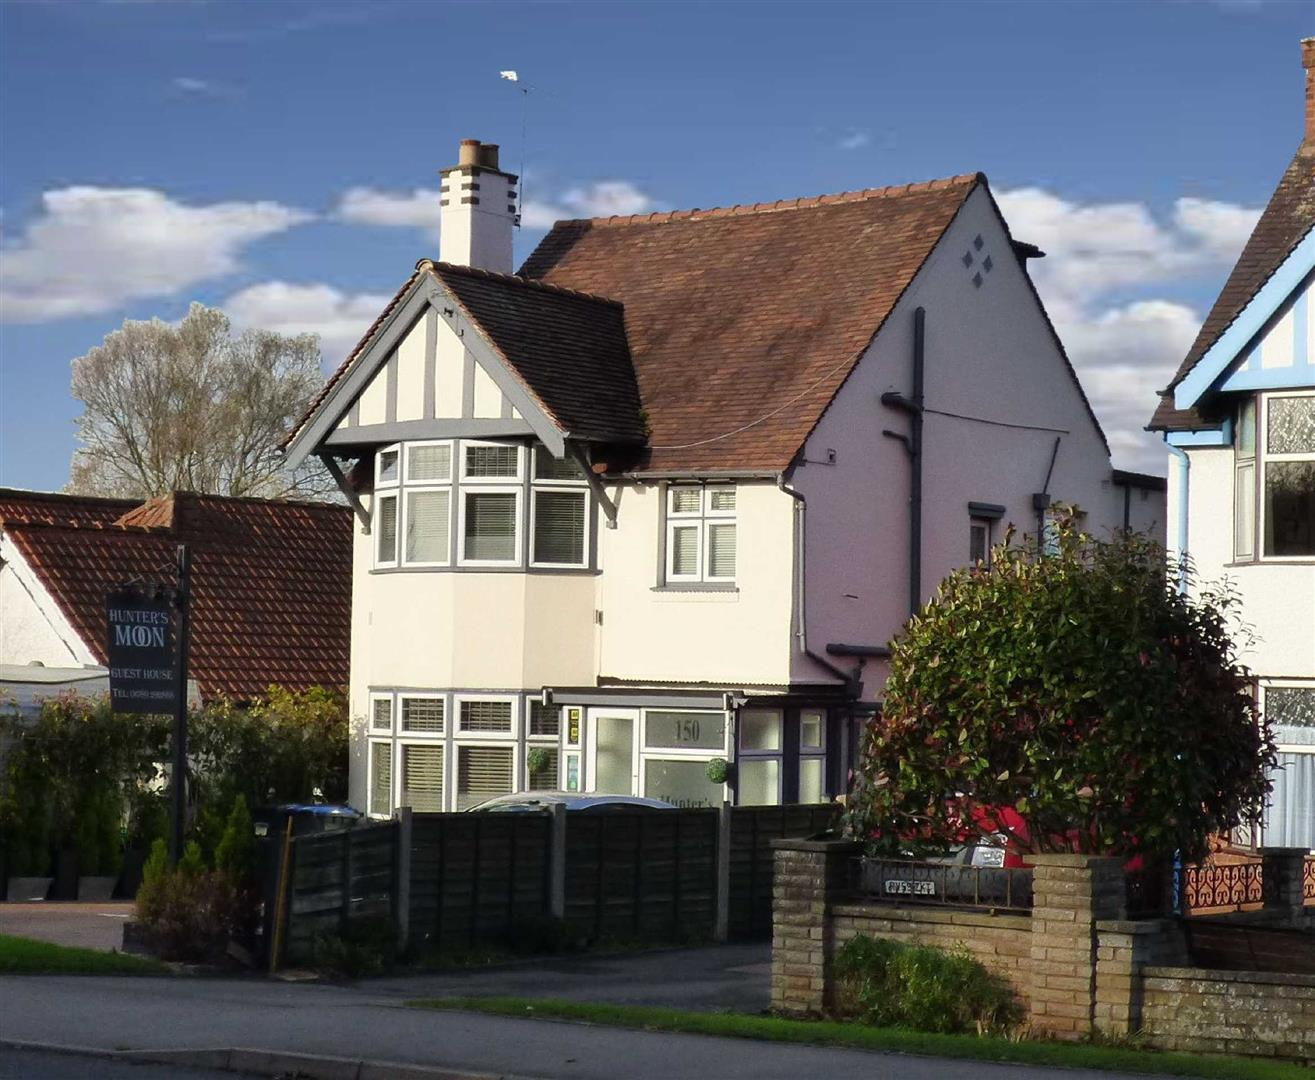 6 Bedrooms Guest House Gust House for sale in Alcester Road, Stratford Upon Avon